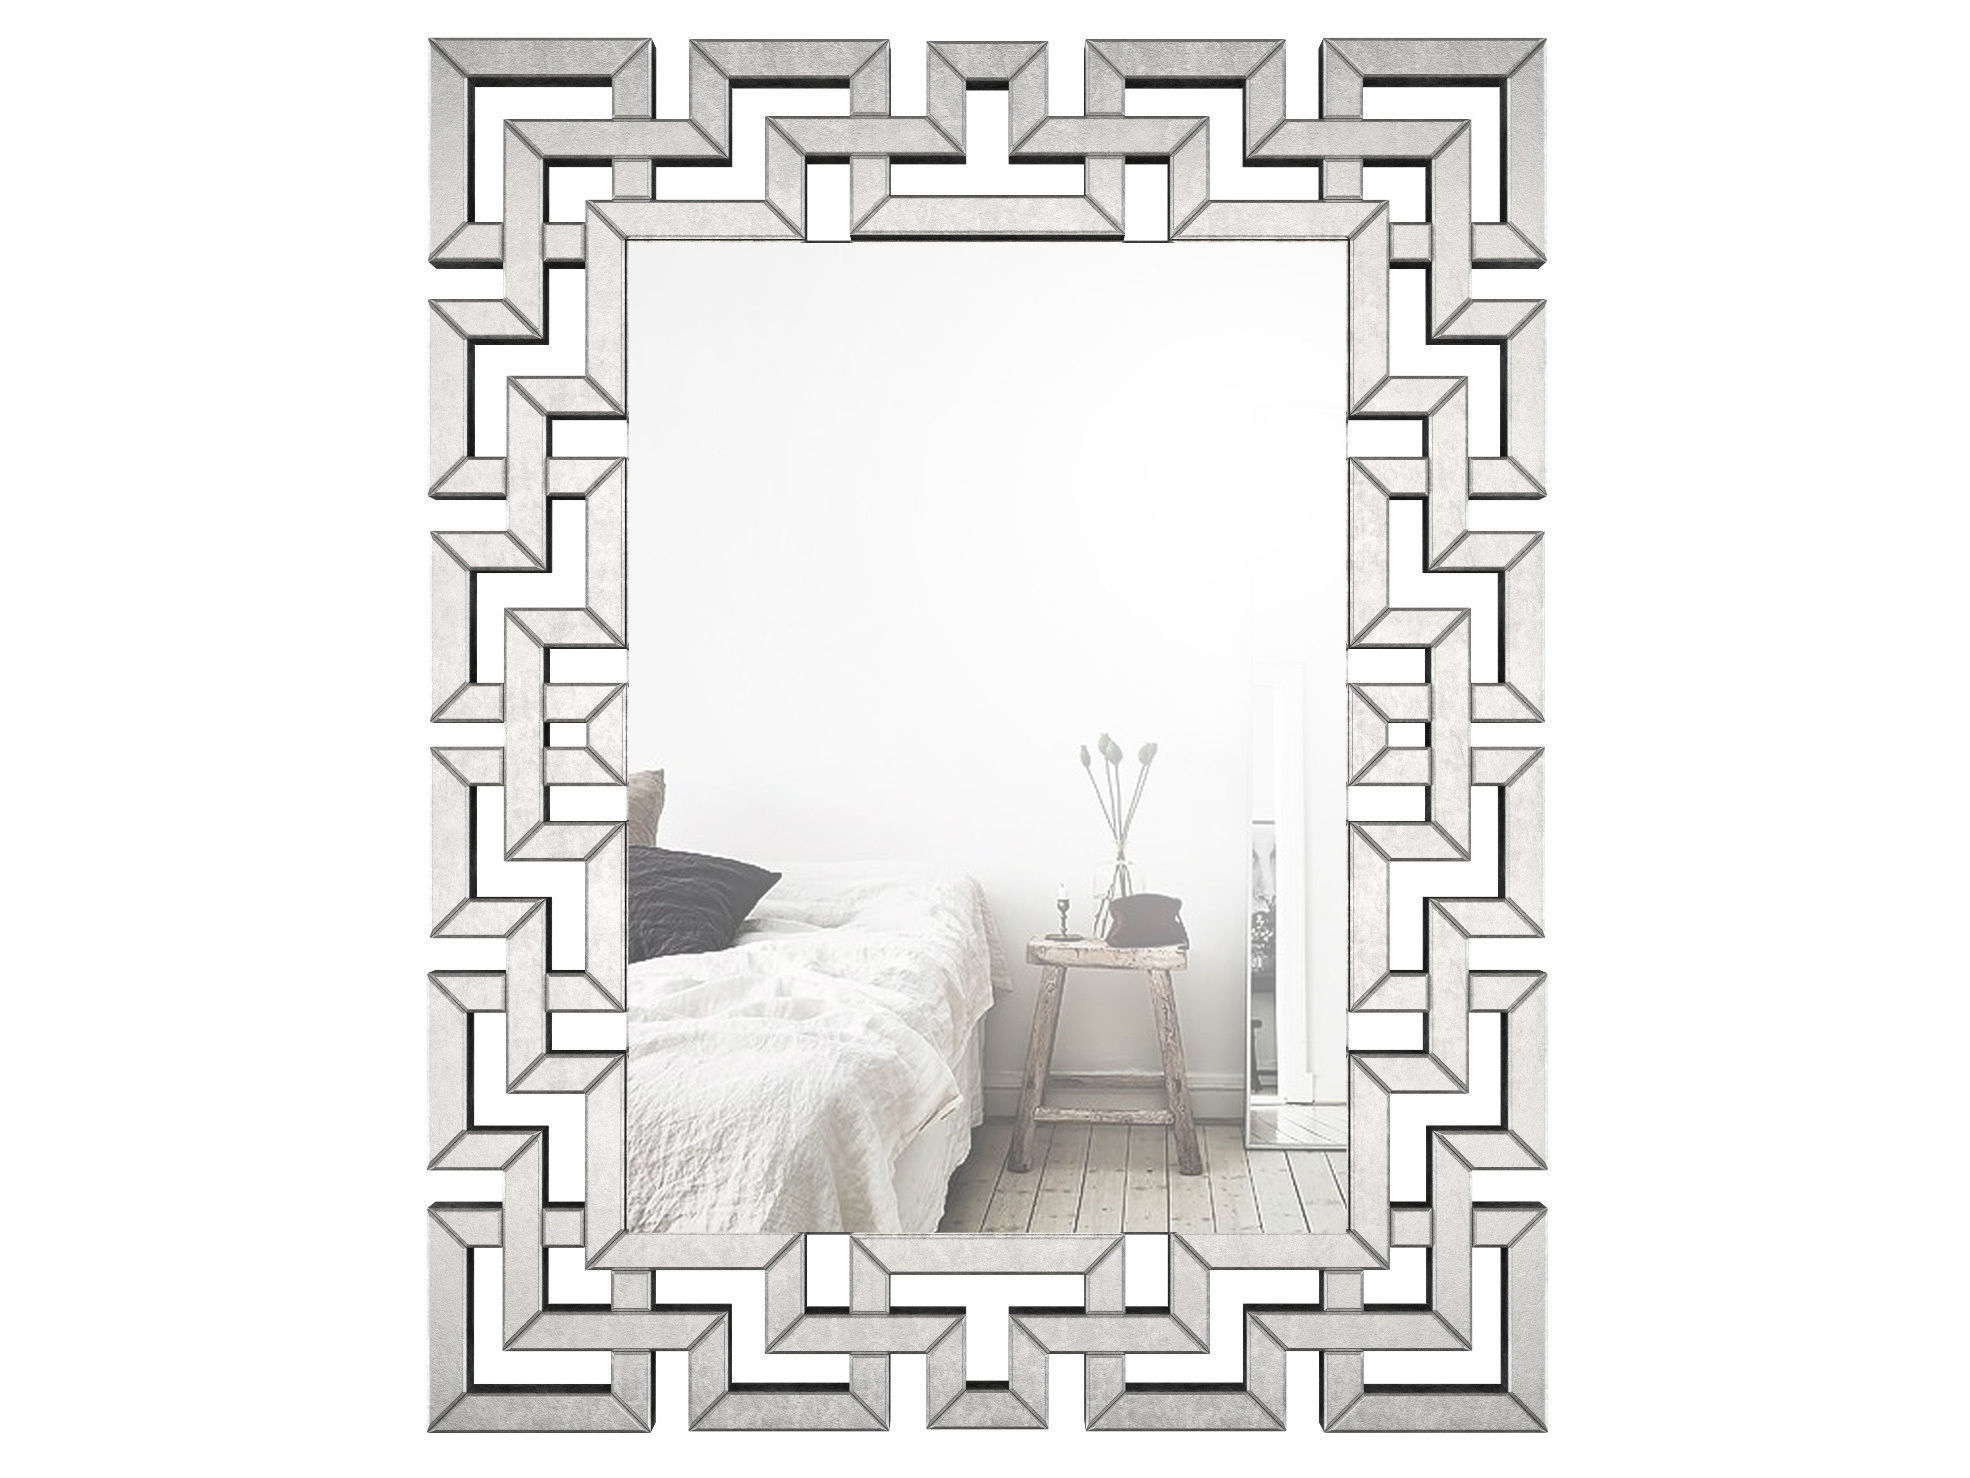 Rectangle Ornate Geometric Wall Mirror Wlao1370 | 3D Model Inside Rectangle Ornate Geometric Wall Mirrors (Photo 3 of 20)